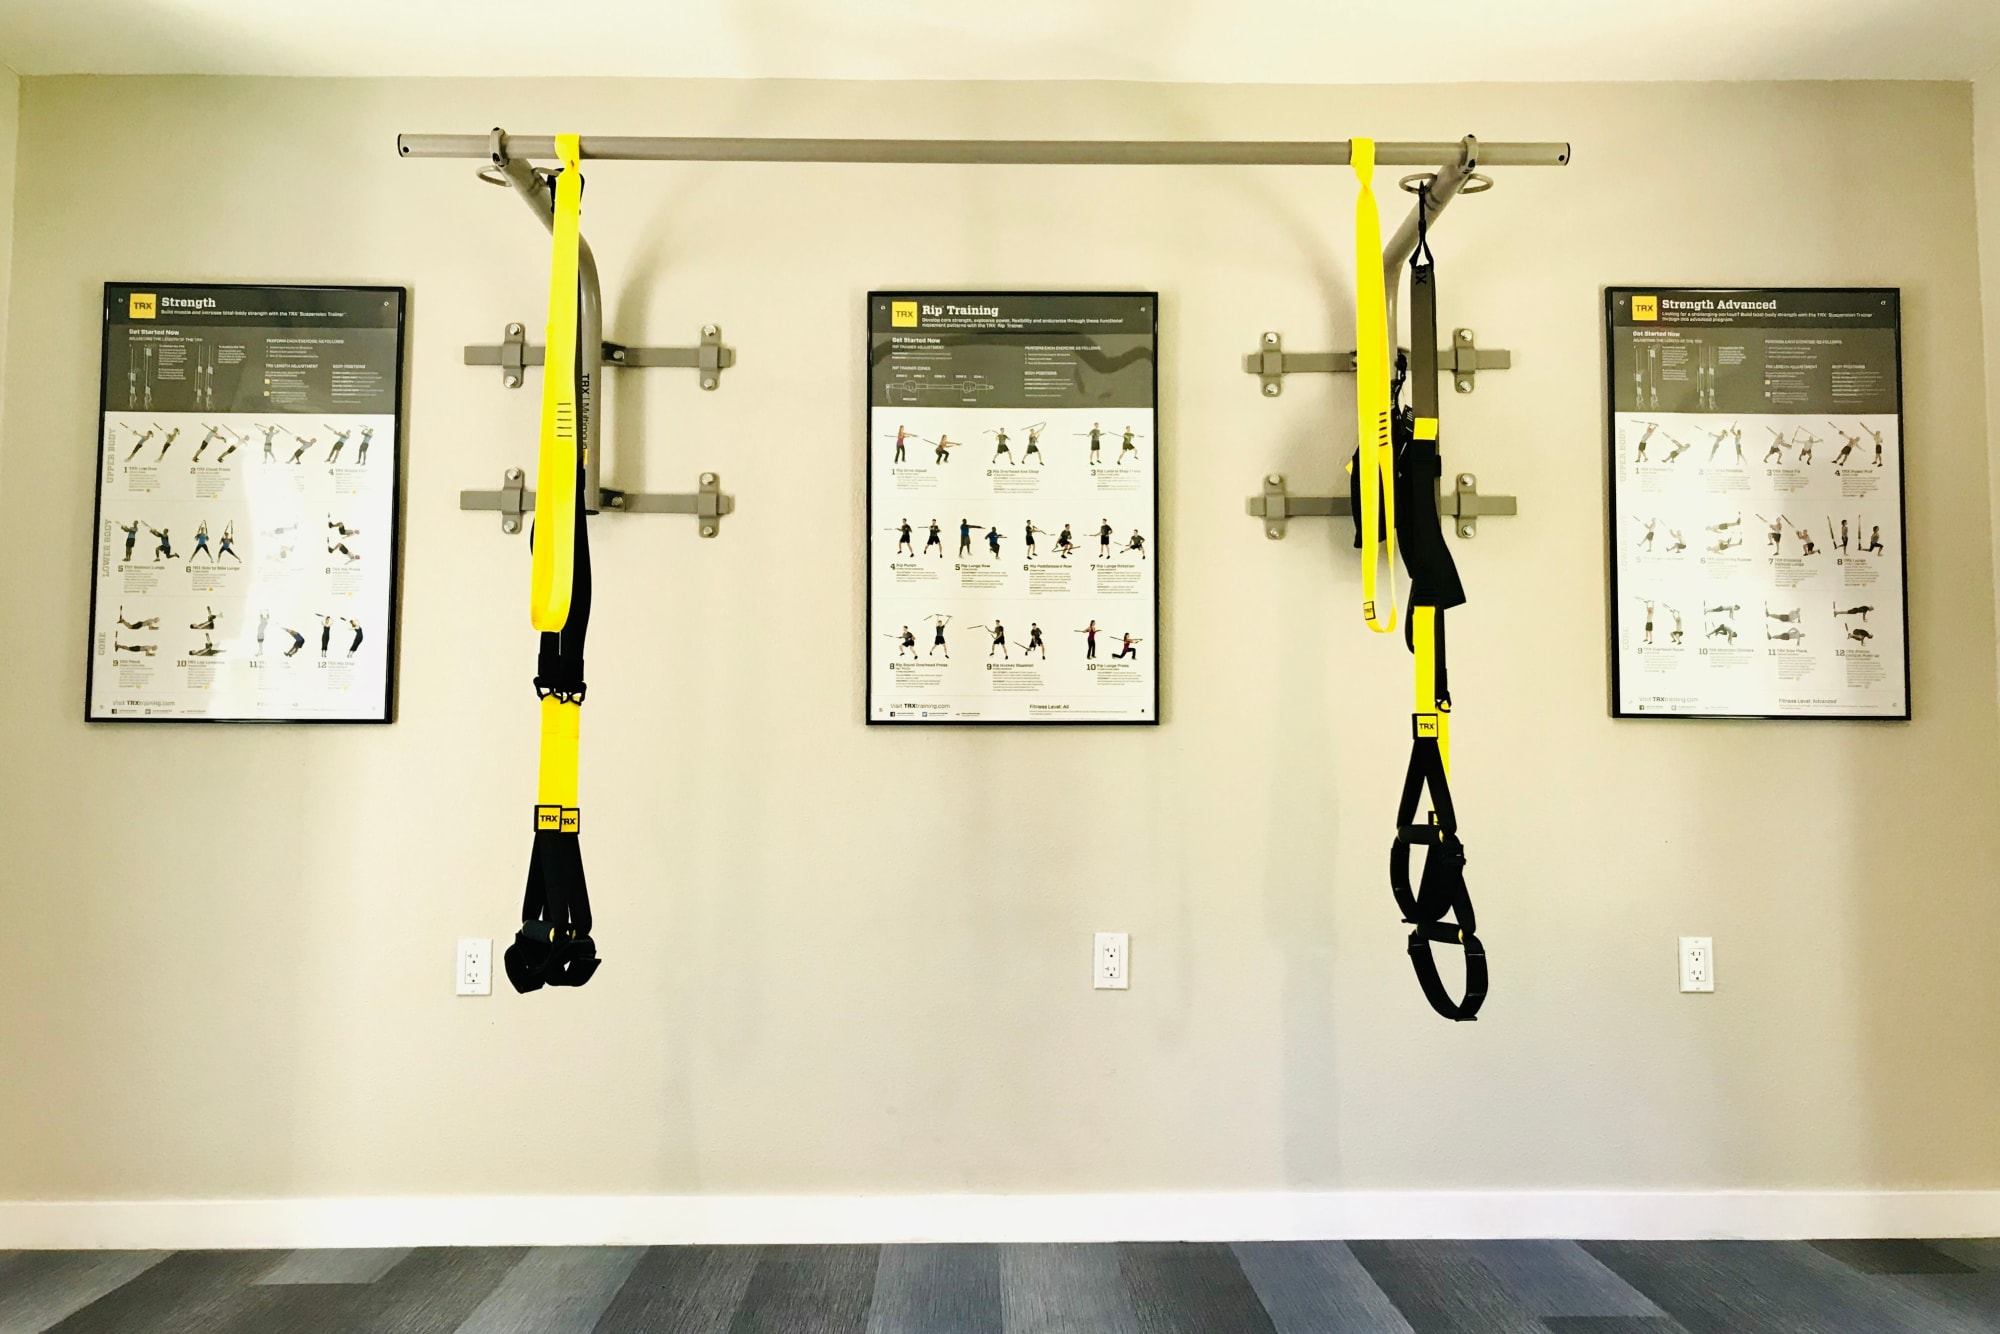 TRX bands in the fitness center